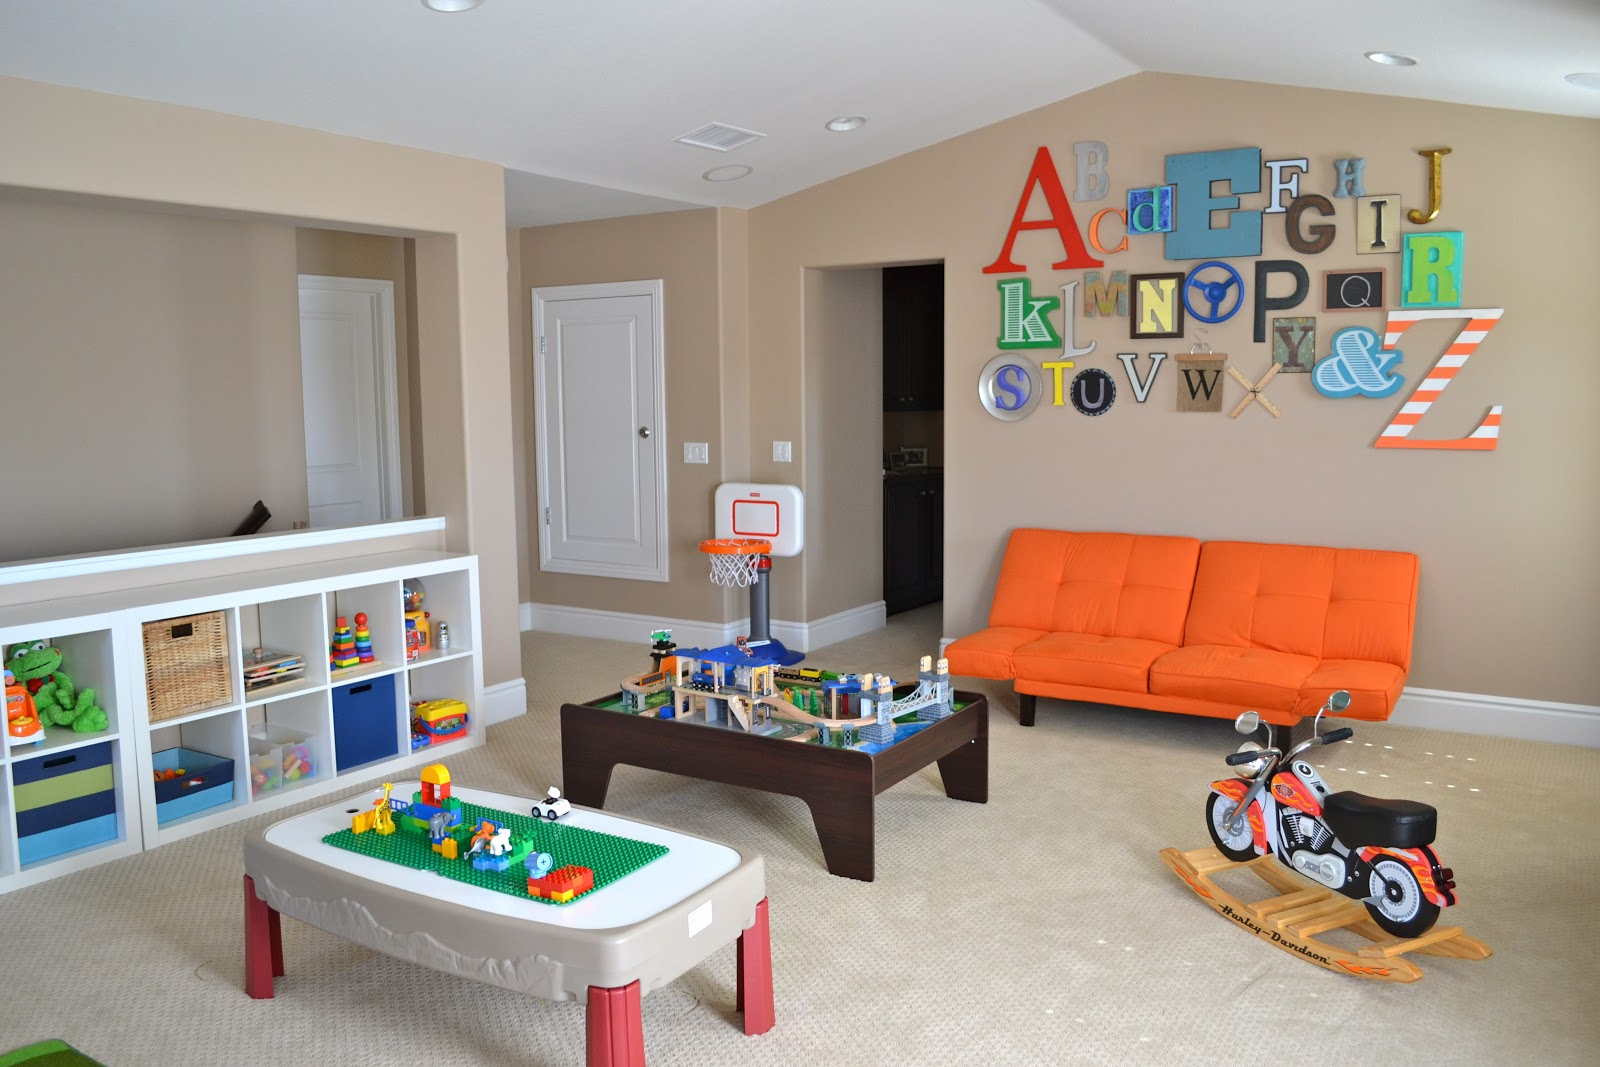 Child Playroom Ideas Playroom Tour With Lots Of Diy Ideas Color Made Happy